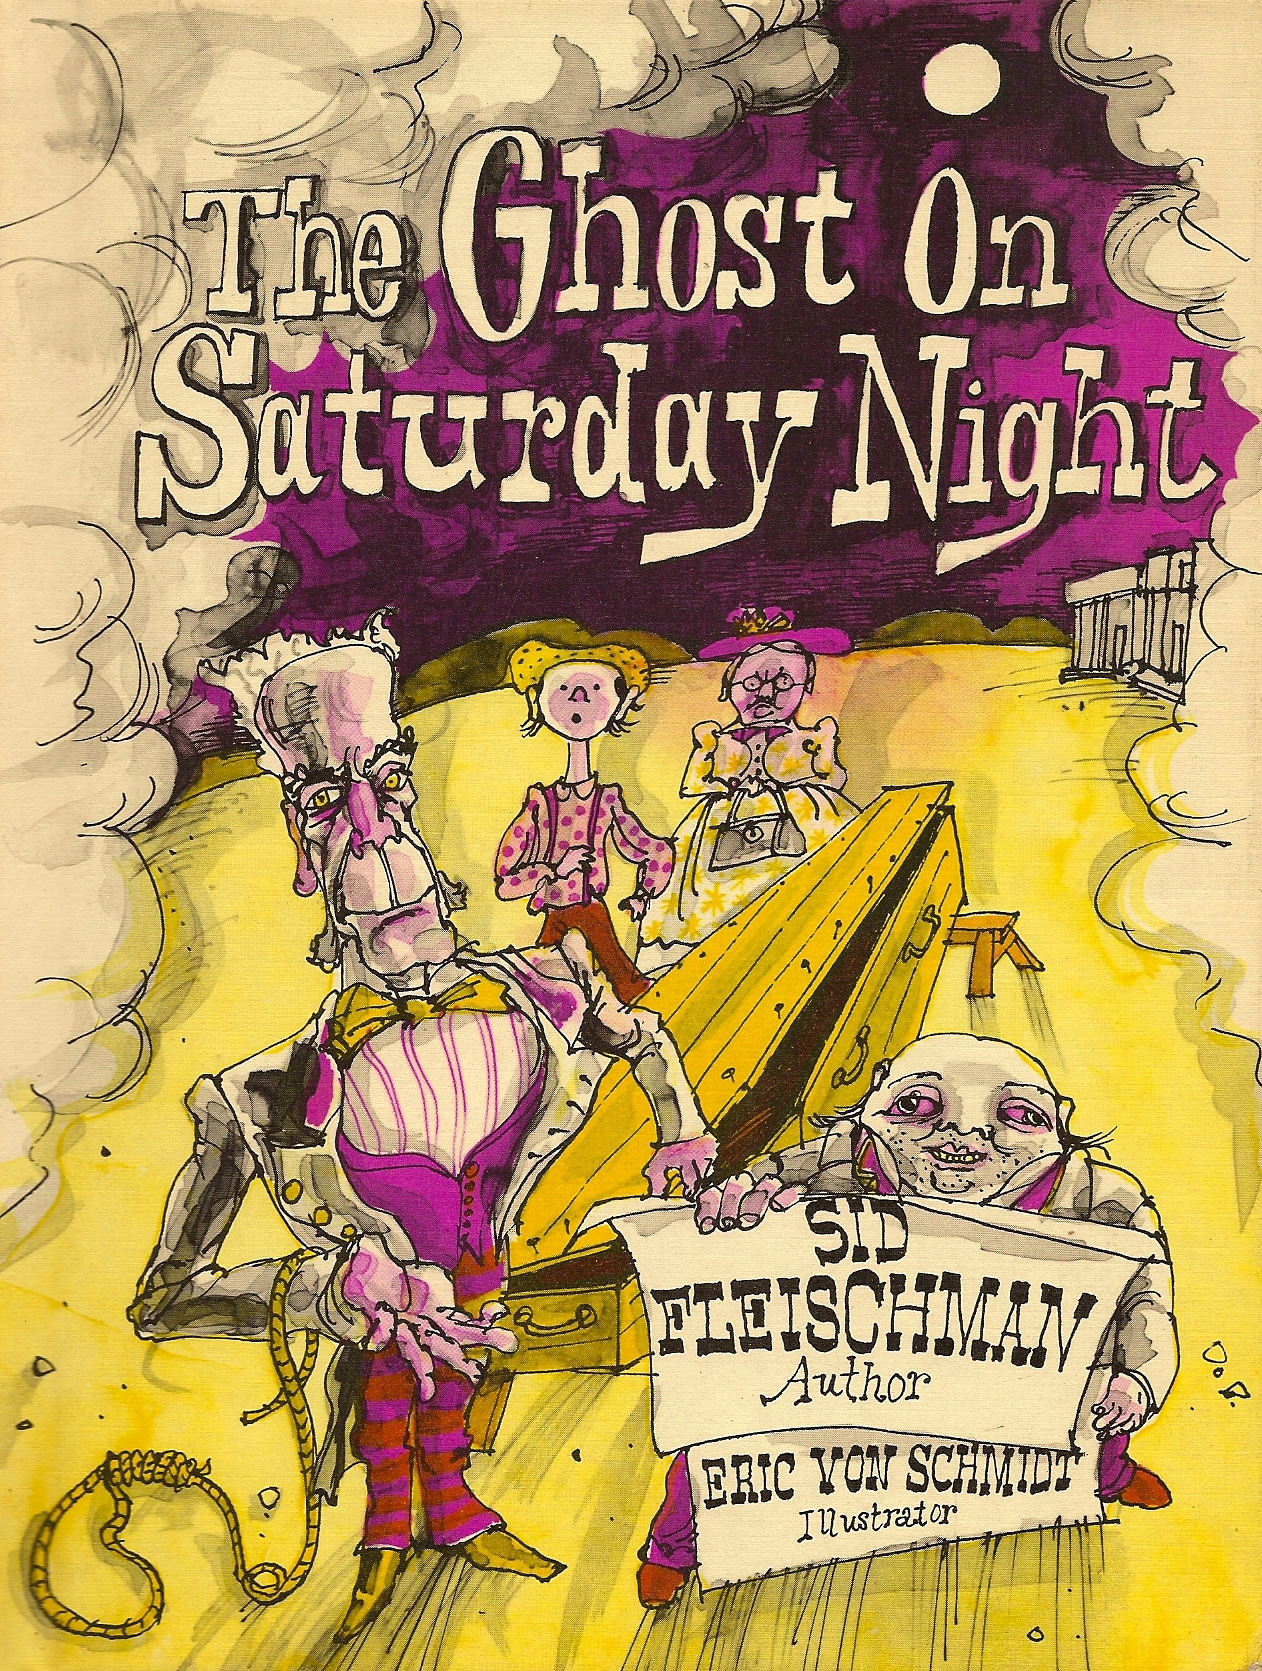 The Ghost on Saturday Night - Illustrated by Laura Cornell The ghost of Crookneck John, a notorious outlaw, gets loose.